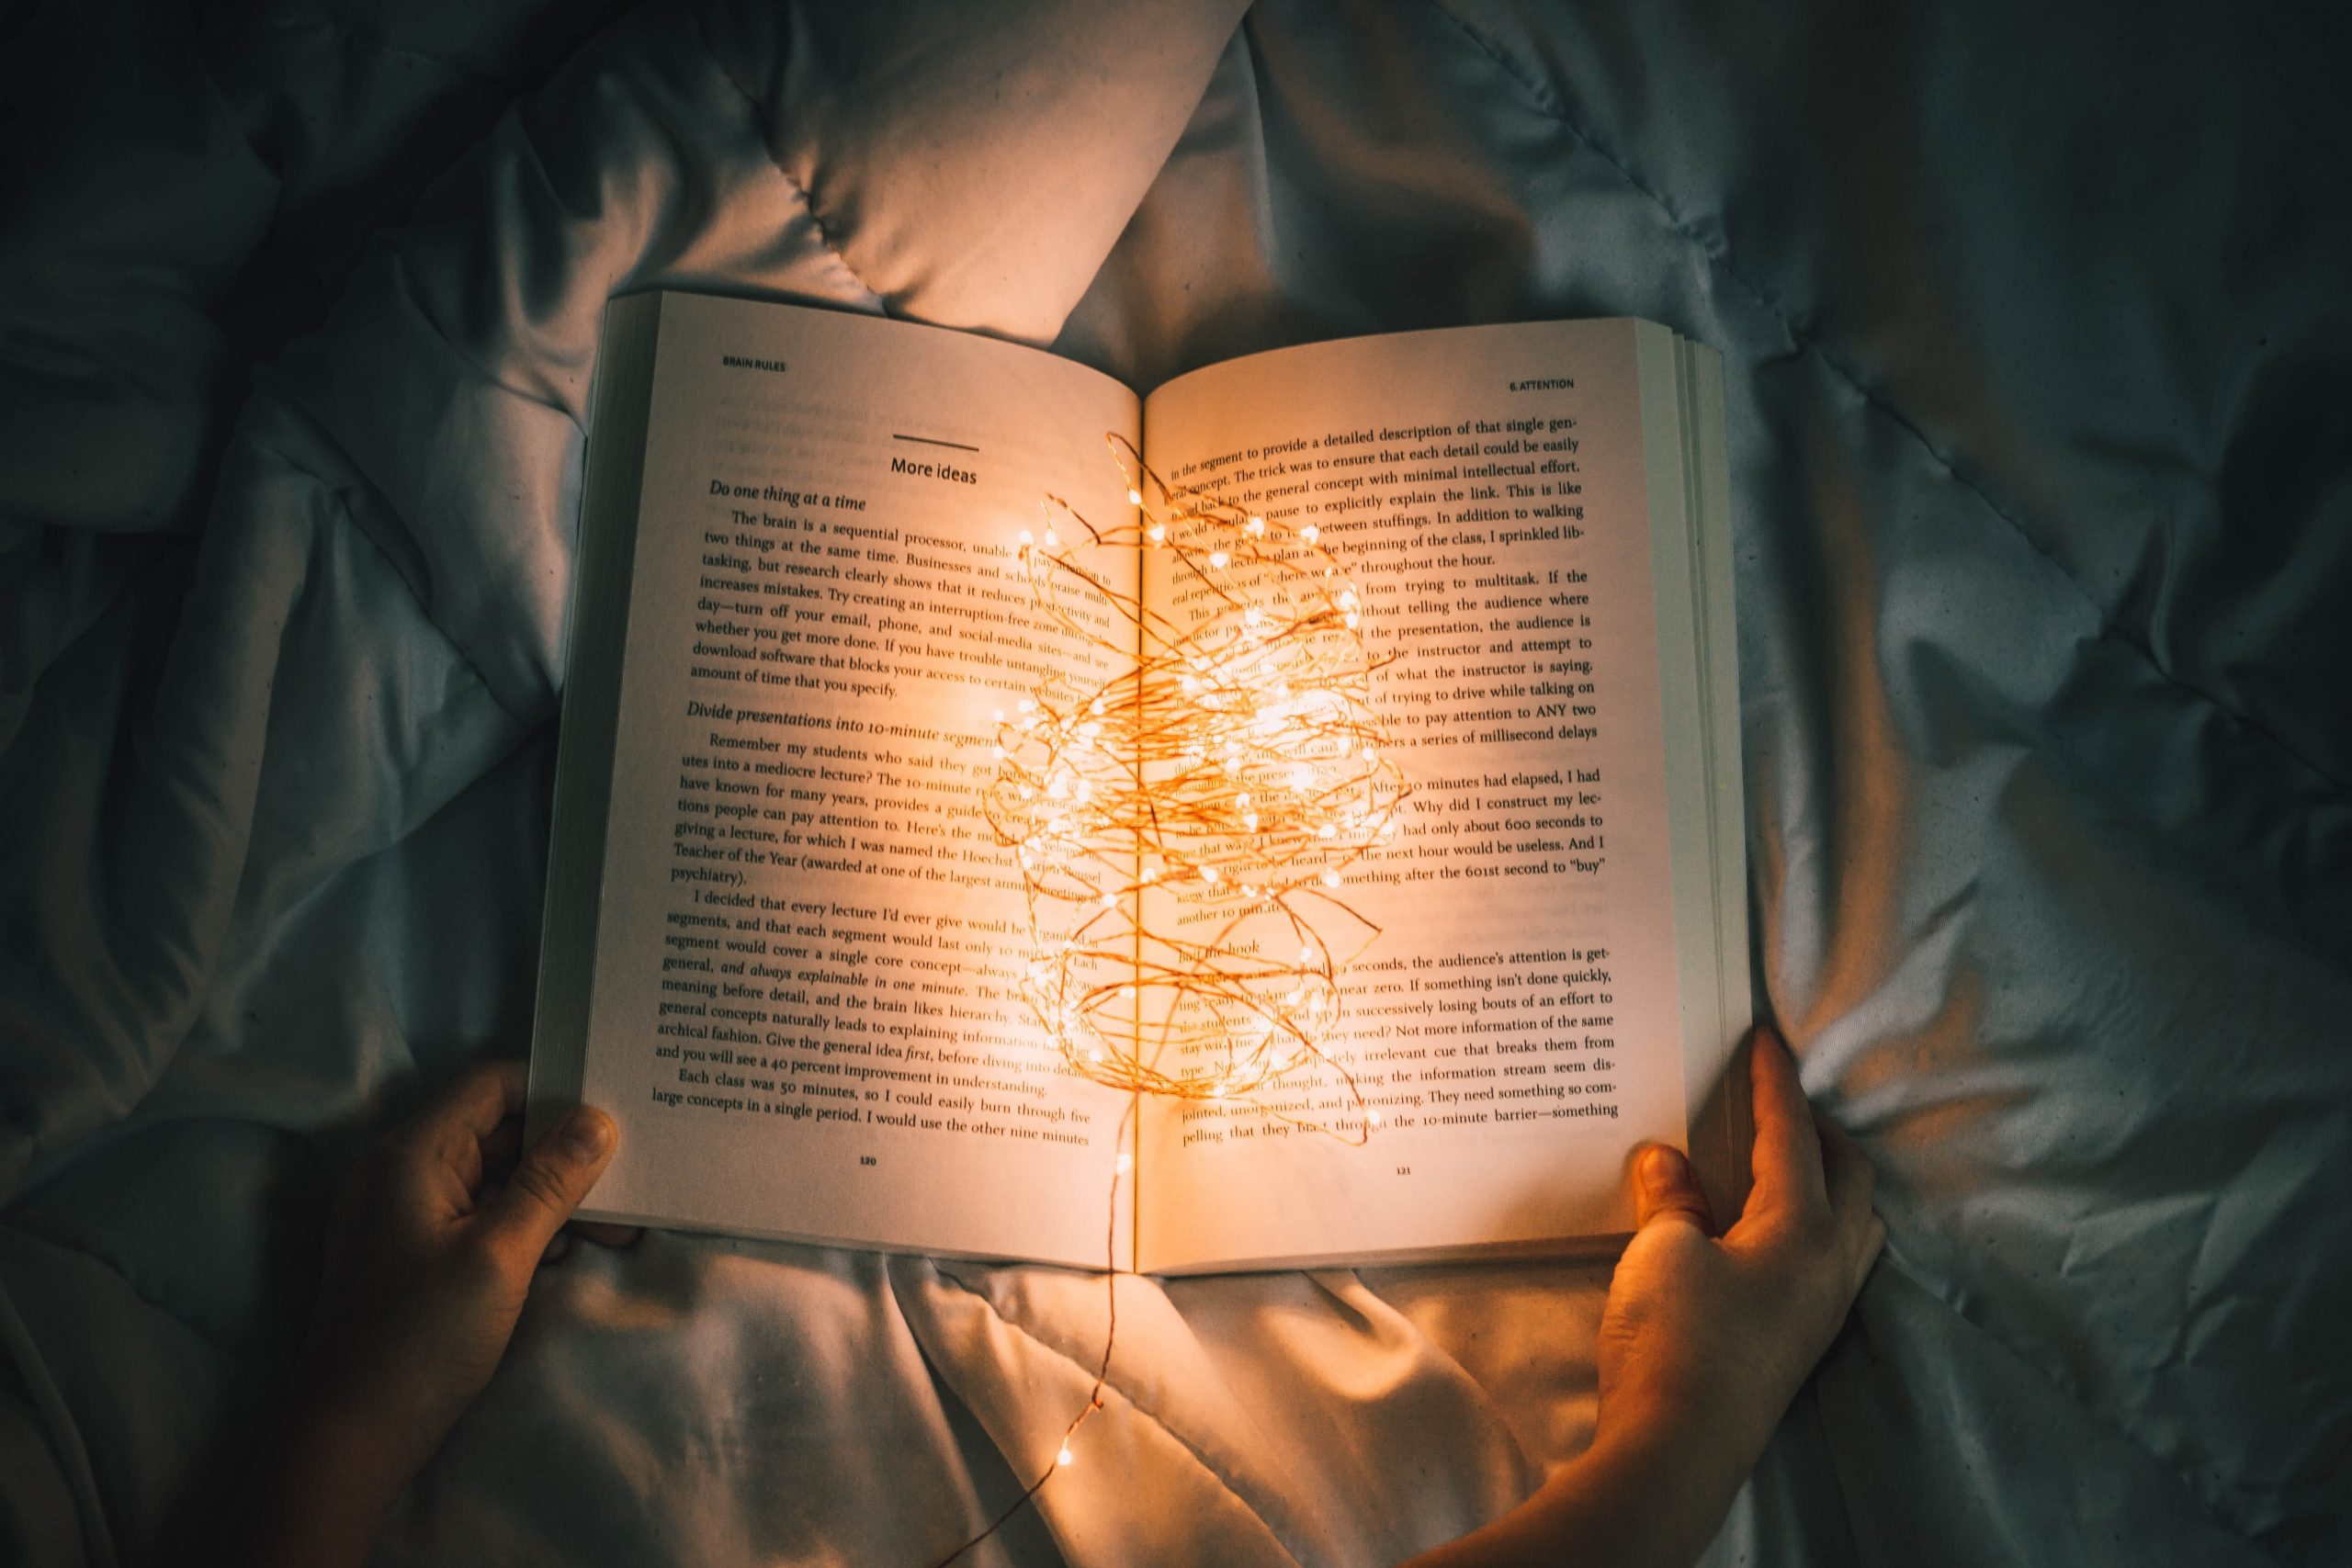 fairy lights in an open book